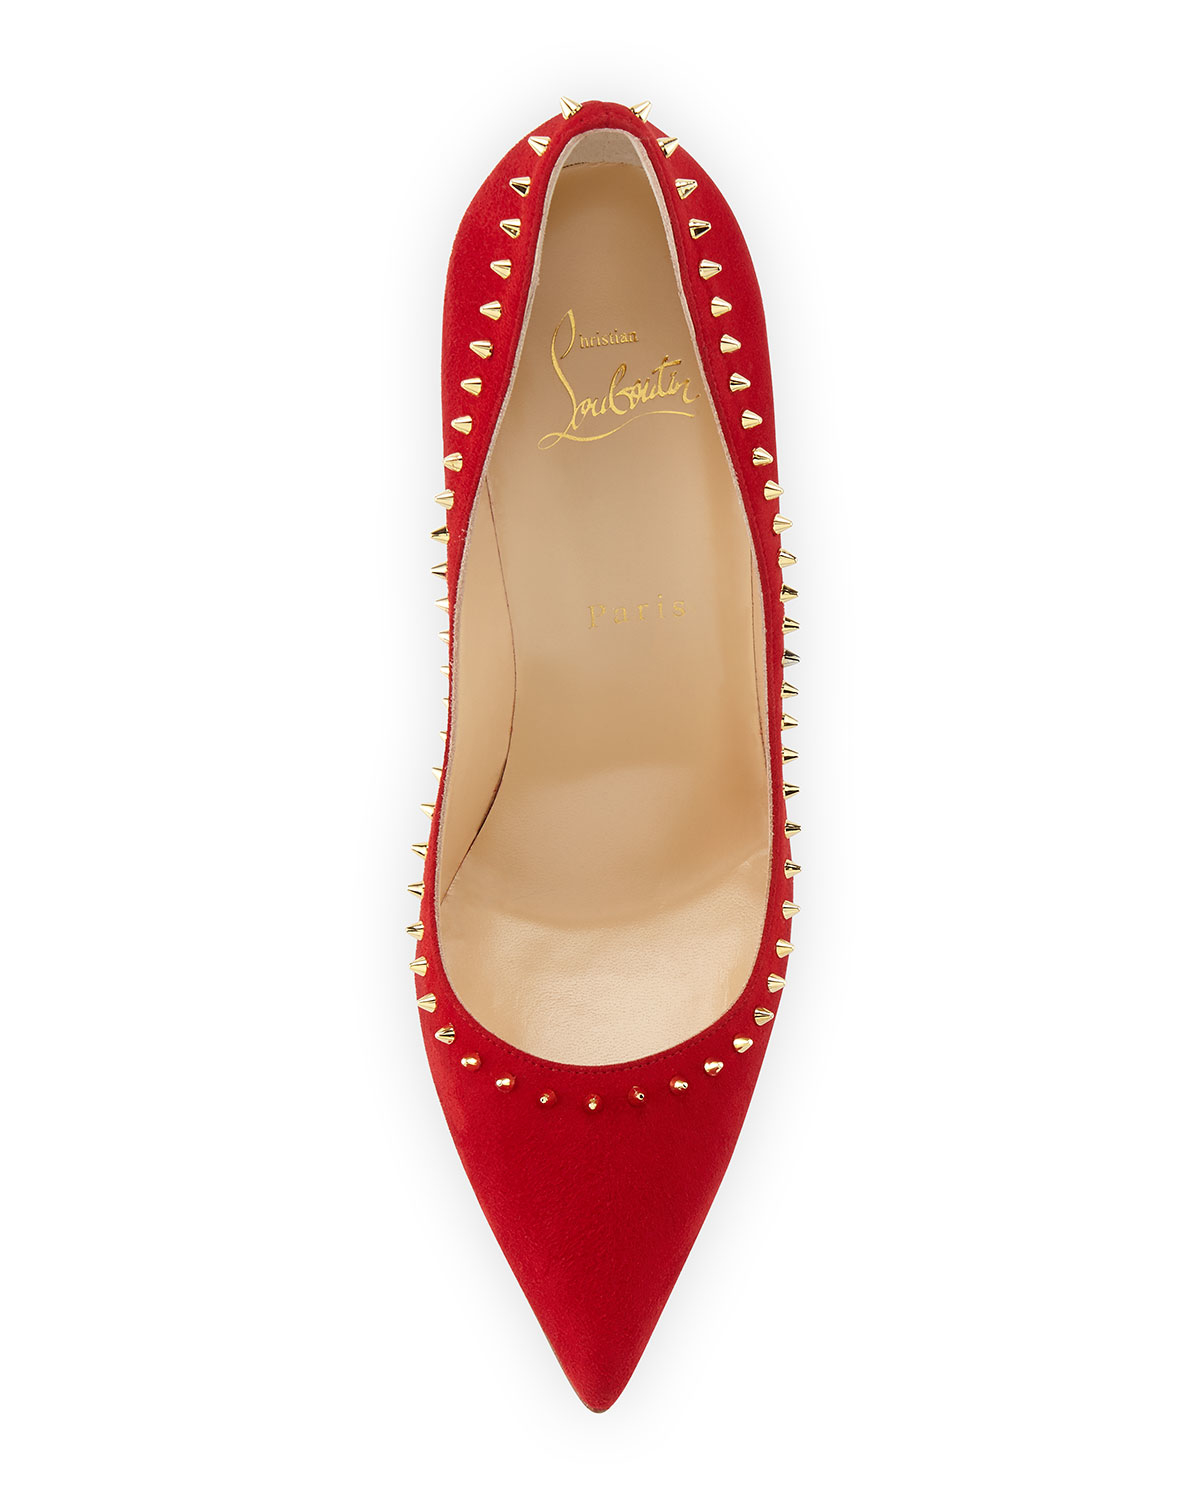 70269025b36 Christian Louboutin Metallic Anjalina Spiked Suede Red-Sole Pumps